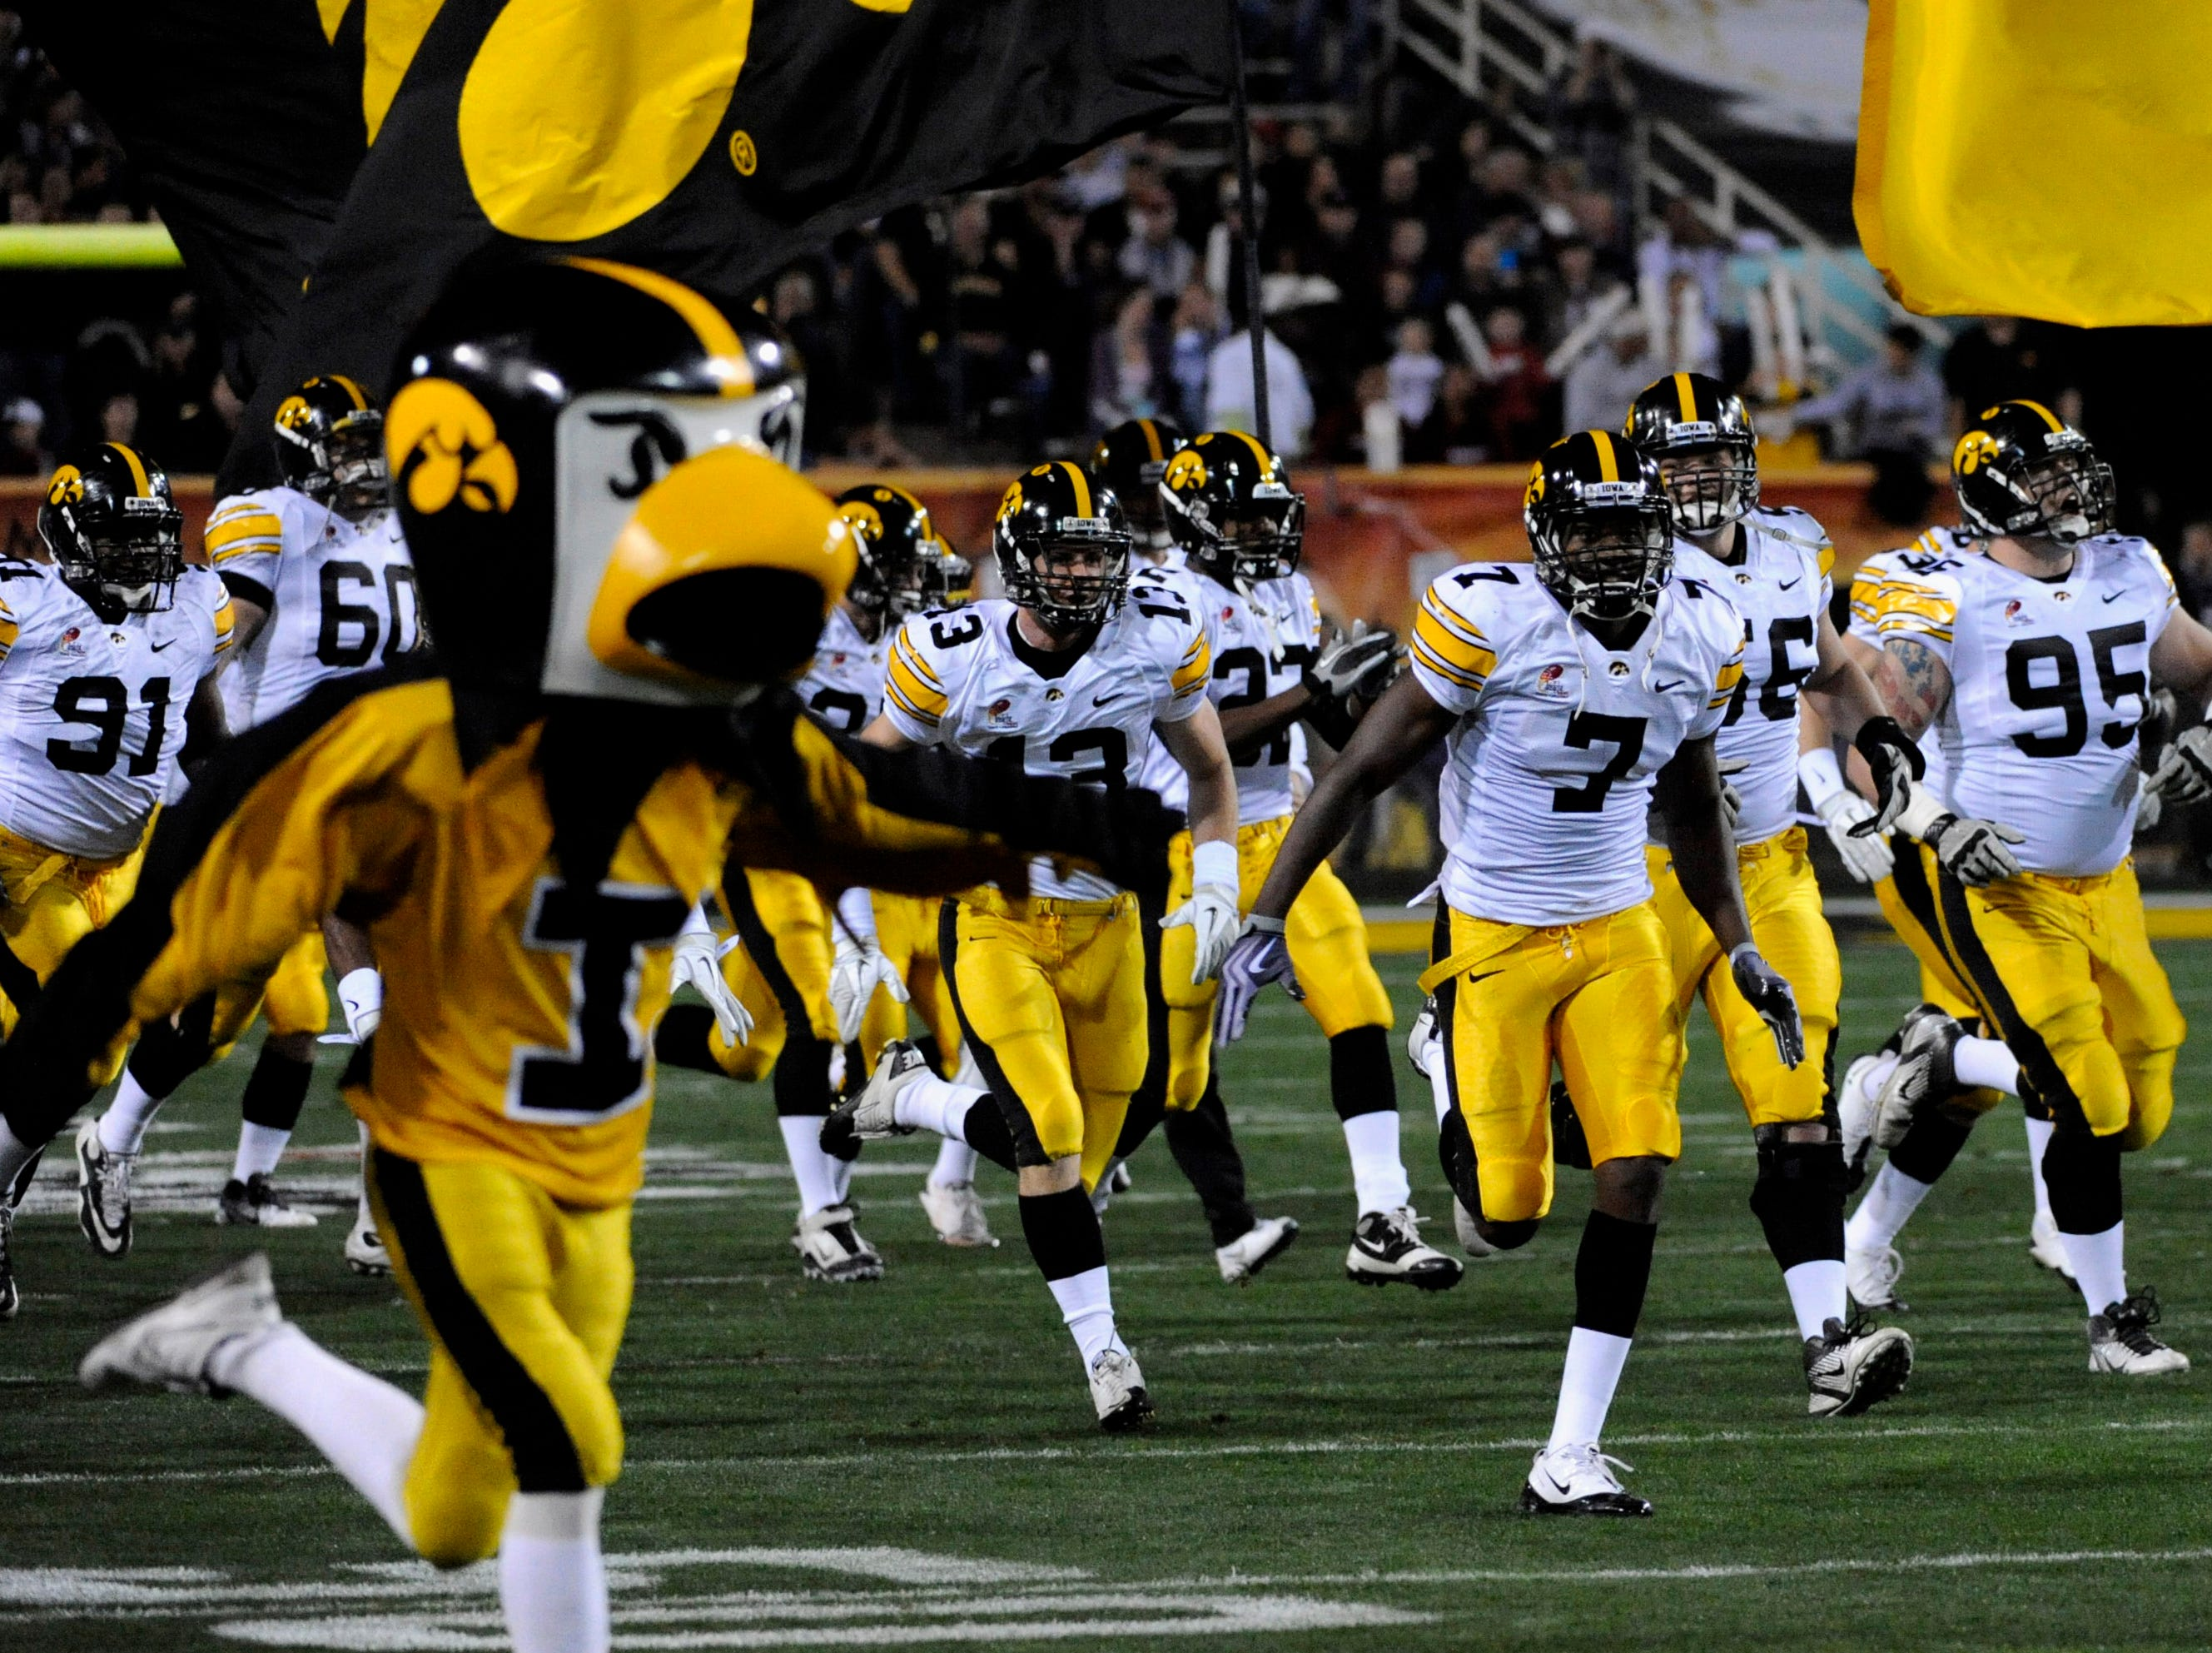 Dec 30, 2011; Tempe, AZ, USA; Iowa Hawkeyes run onto the field before the first half of the 2011 Insight Bowl against the Oklahoma Sooners at the Sun Devil Stadium. Mandatory Credit: Richard Mackson-USA TODAY Sports